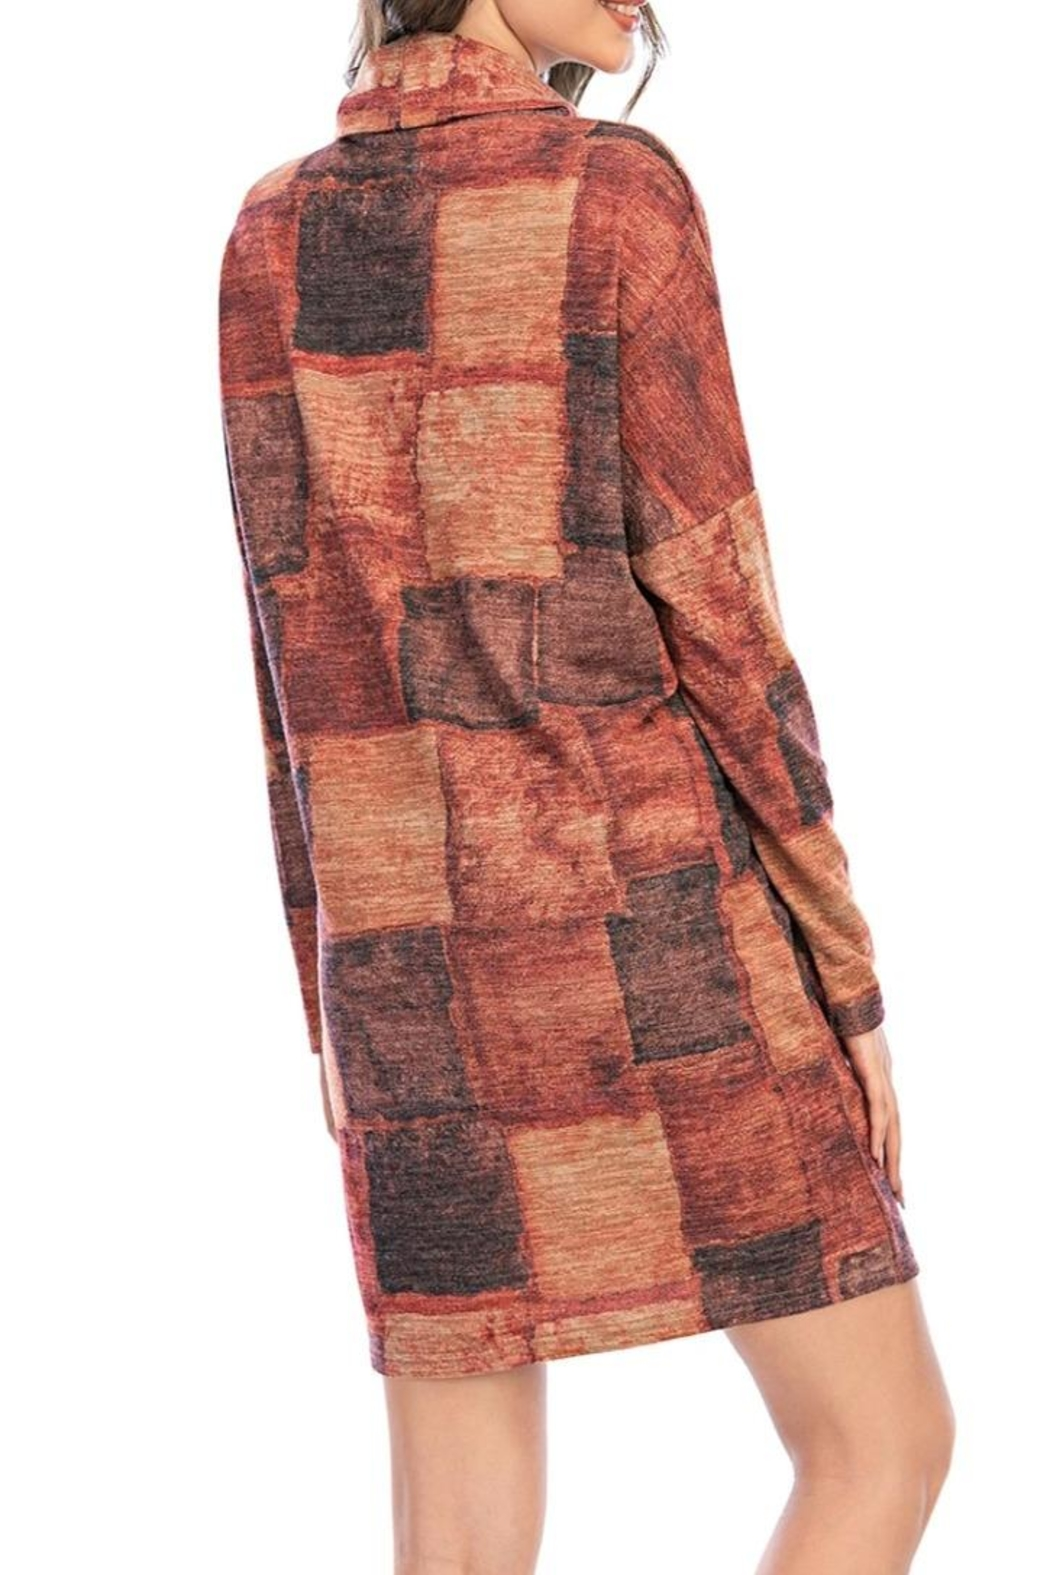 Aryeh Rust Turtle Neck Plaid Dress - Back Cropped Image